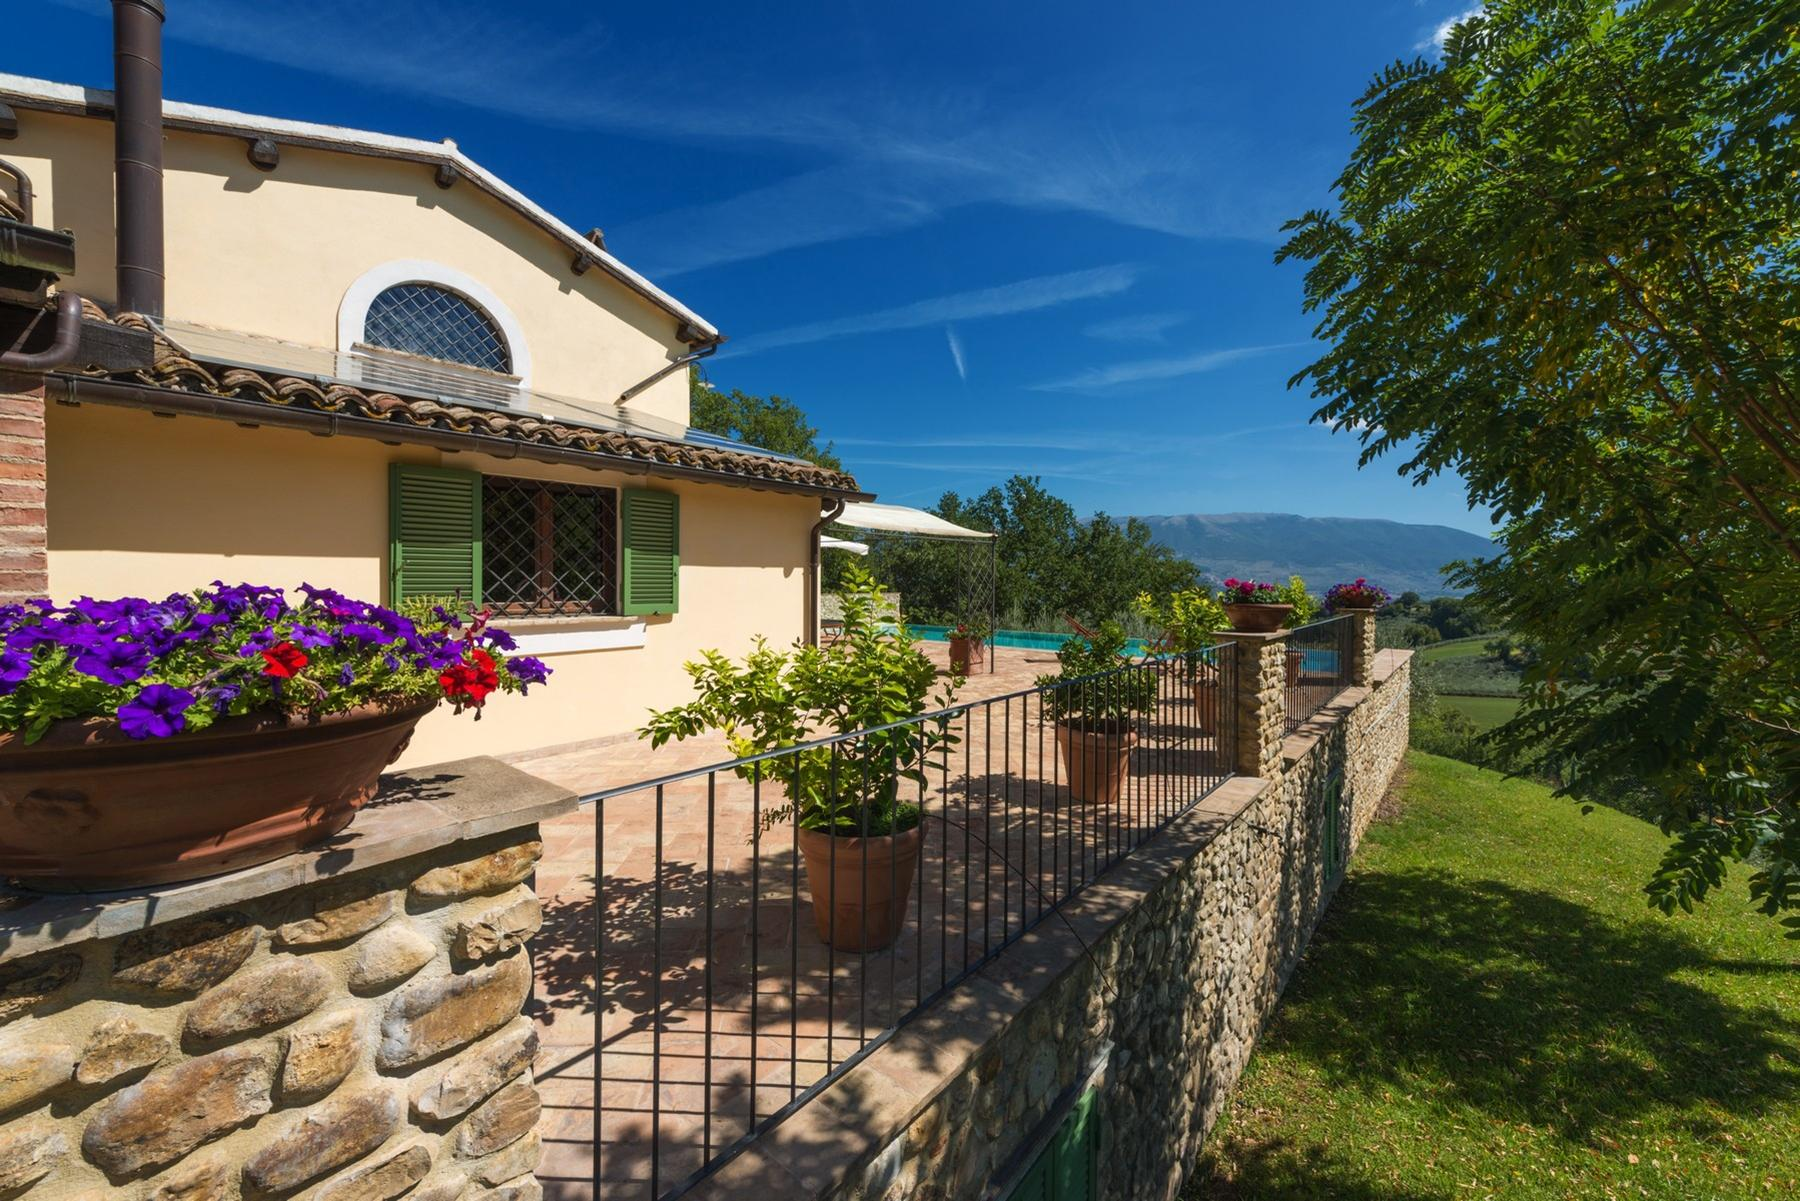 Enchanting property in the Umbrian hills - 6